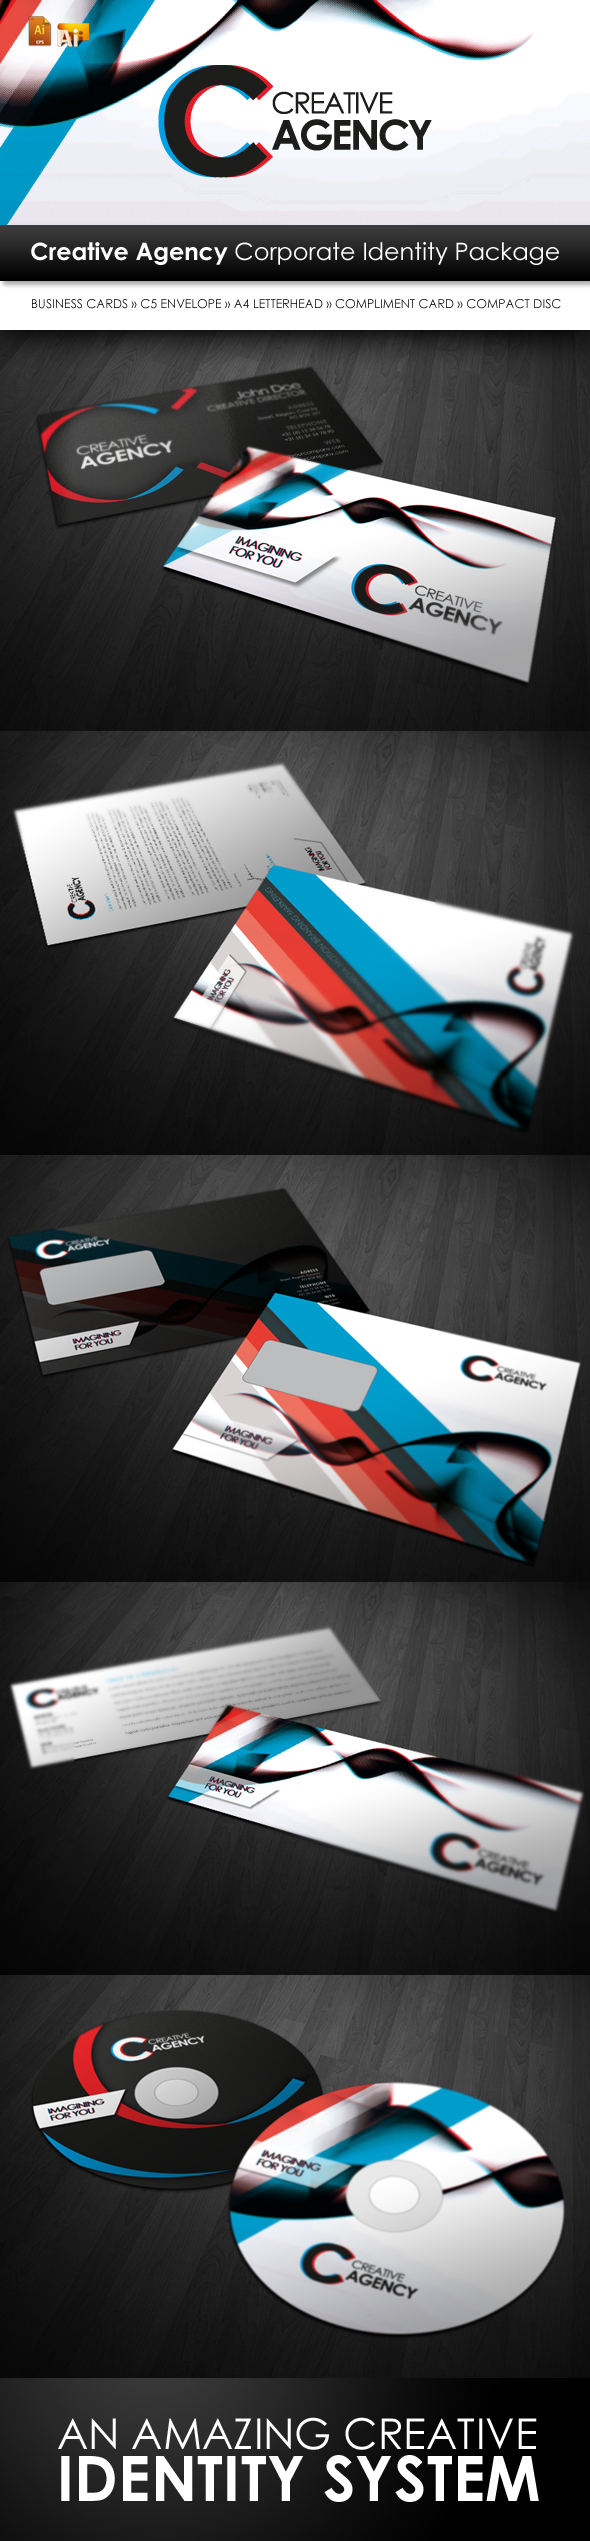 Rw creative agency identity by reclameworks on deviantart rw creative agency identity by reclameworks rw creative agency identity by reclameworks reheart Images